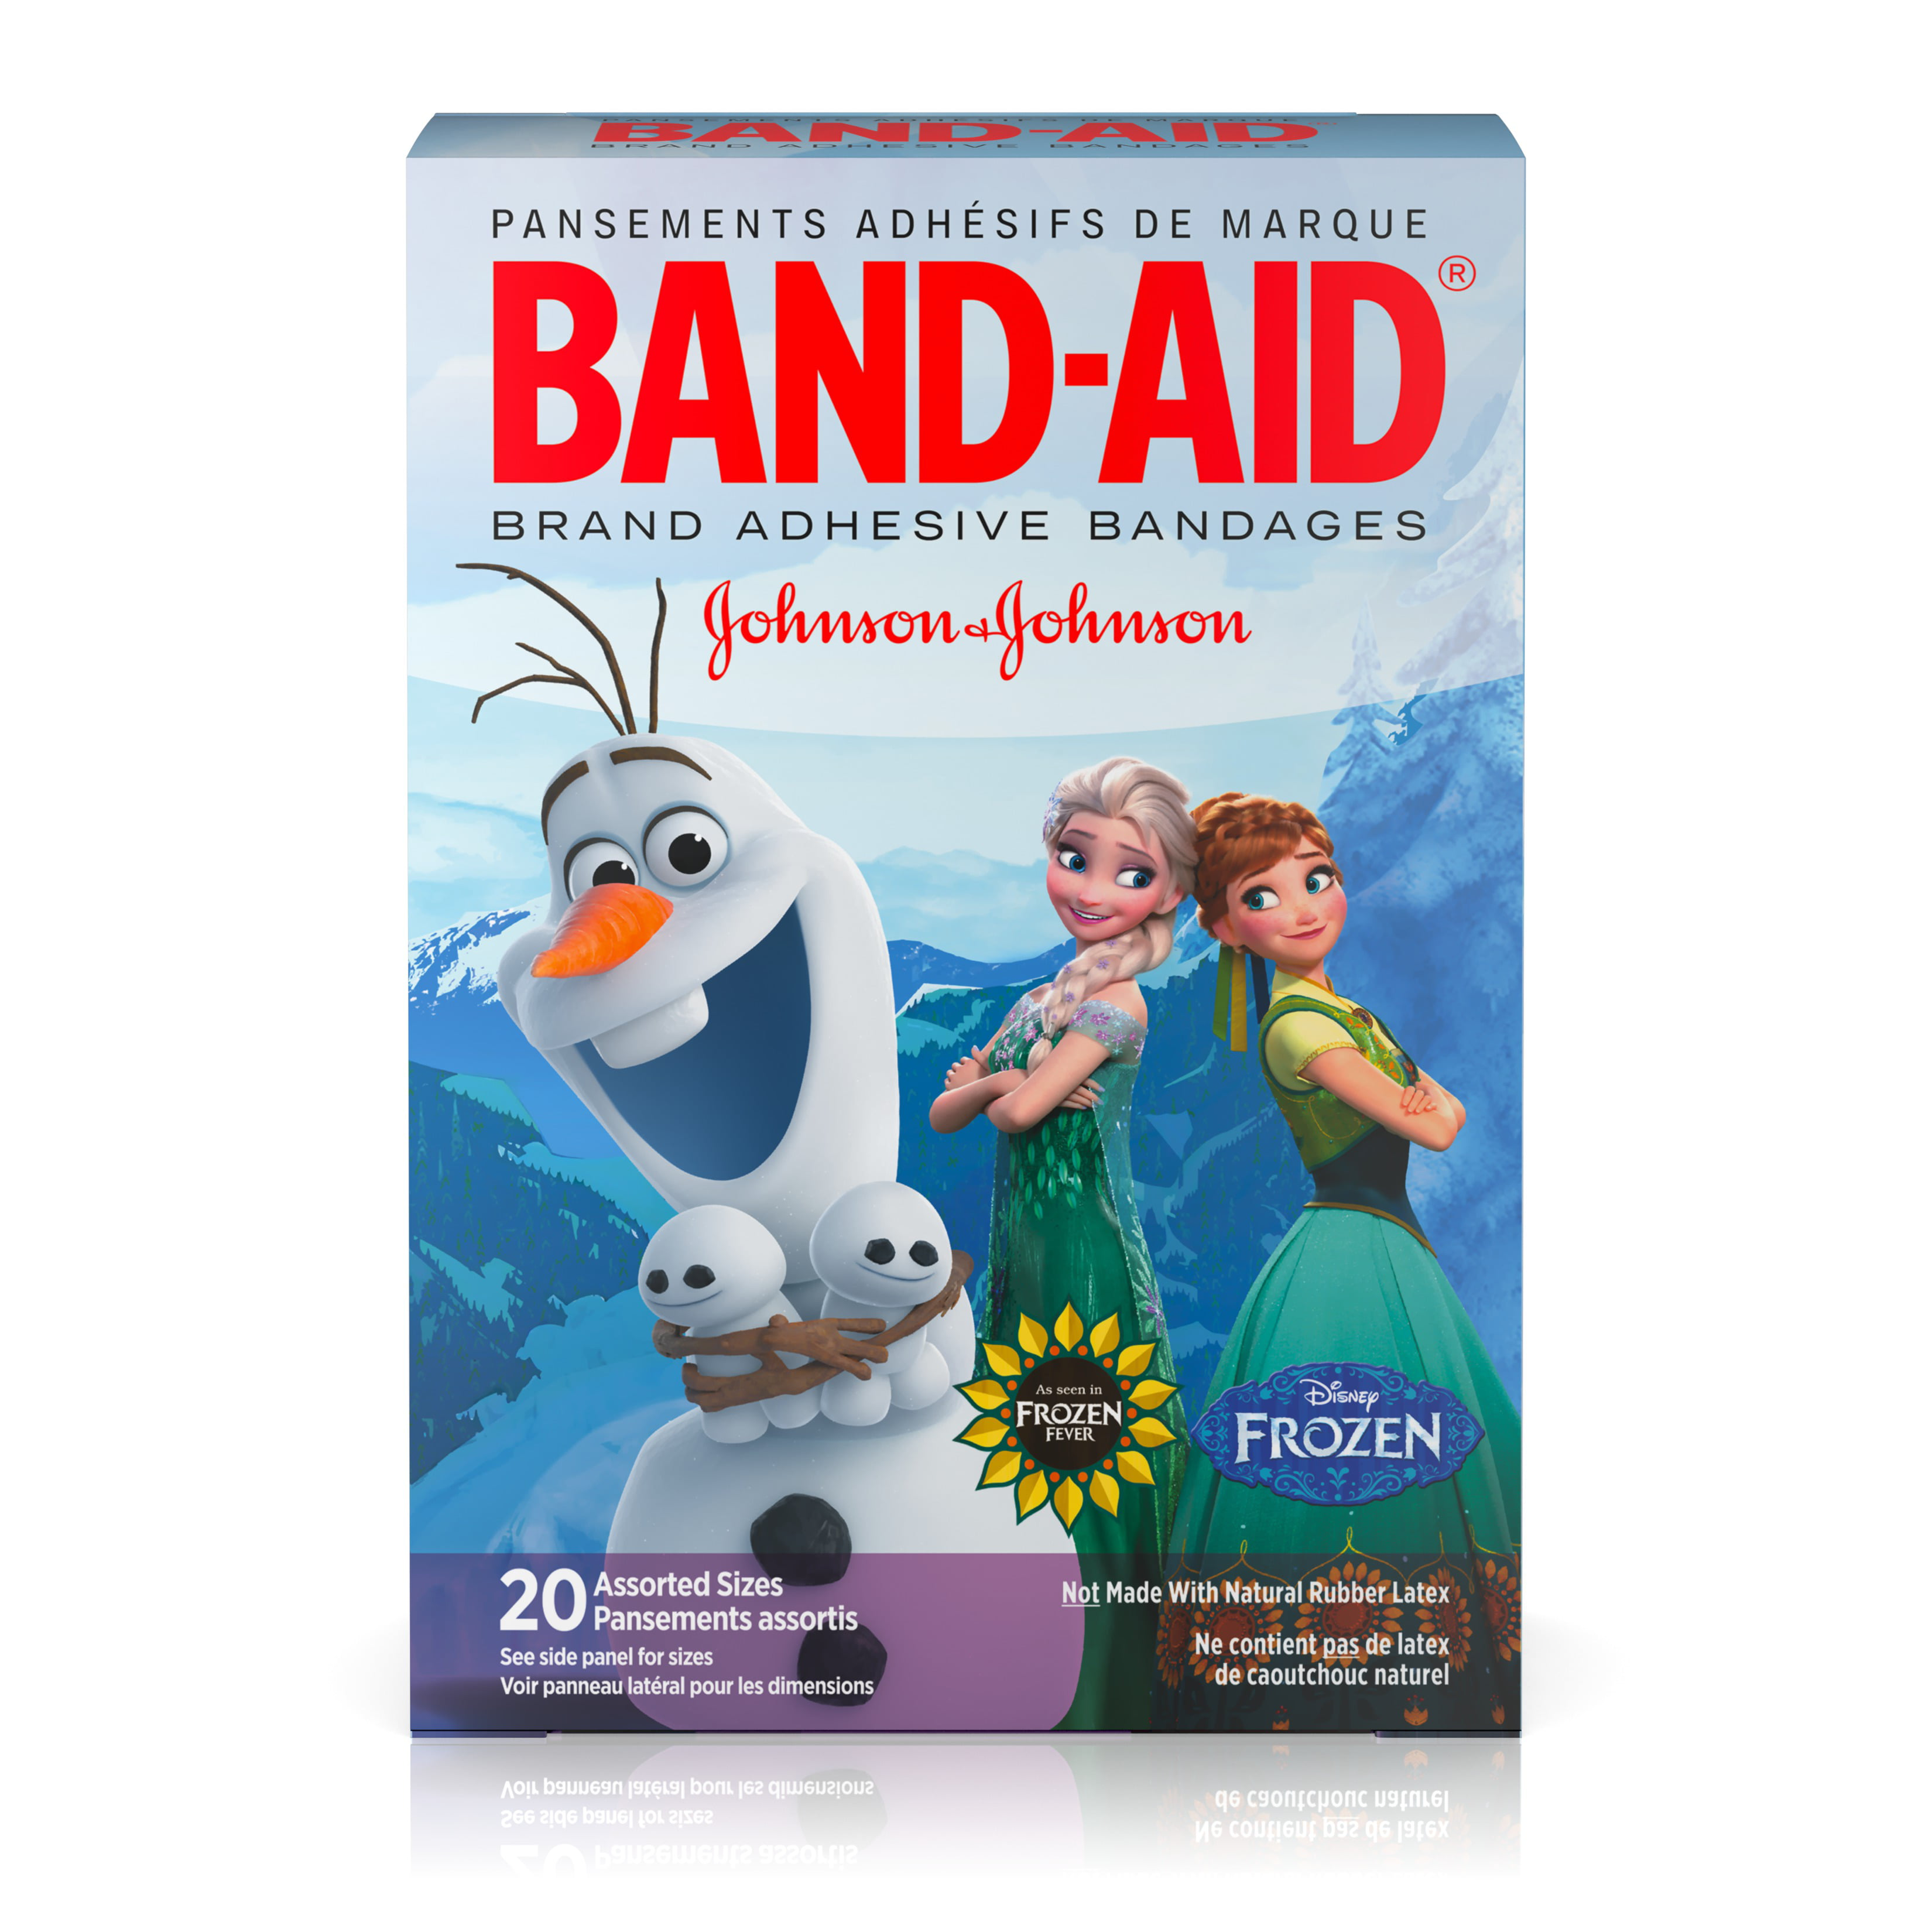 Band-Aid Brand Adhesive Bandages, Disney Frozen, Assorted Sizes 20 ct by Johnson & Johnson